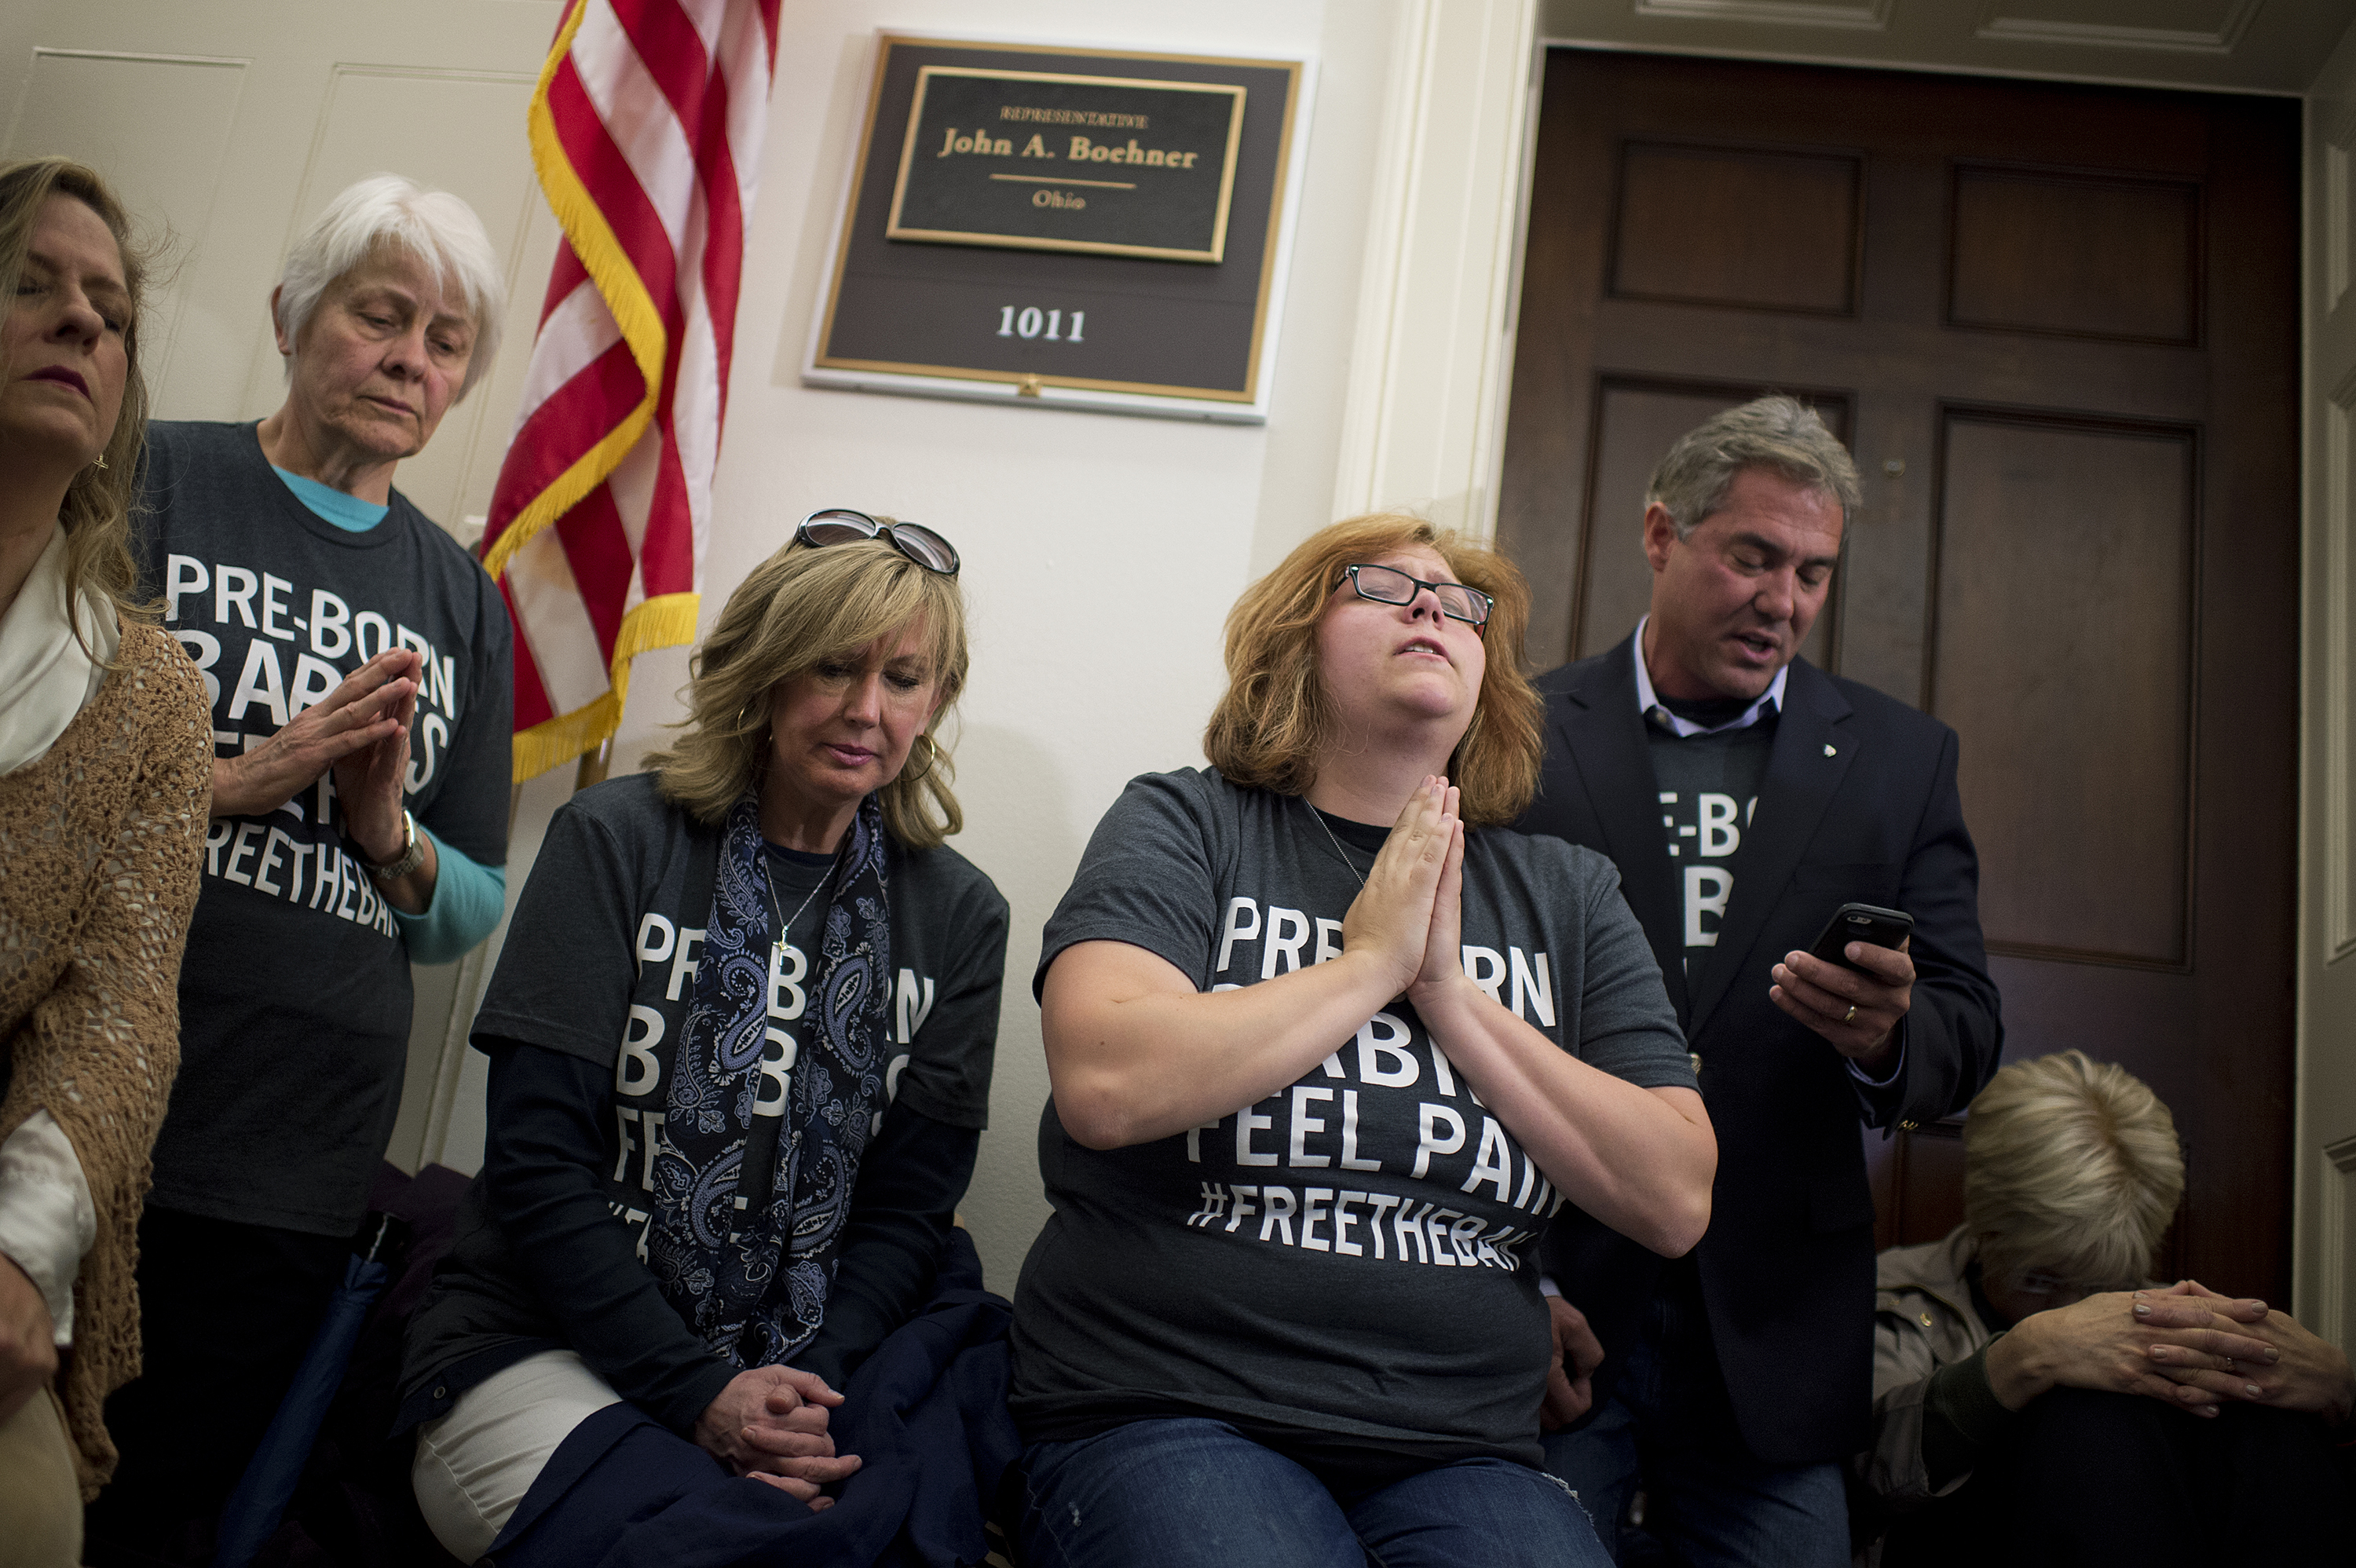 a white woman with black glasses closes her eyes and prays in front of a politician's office